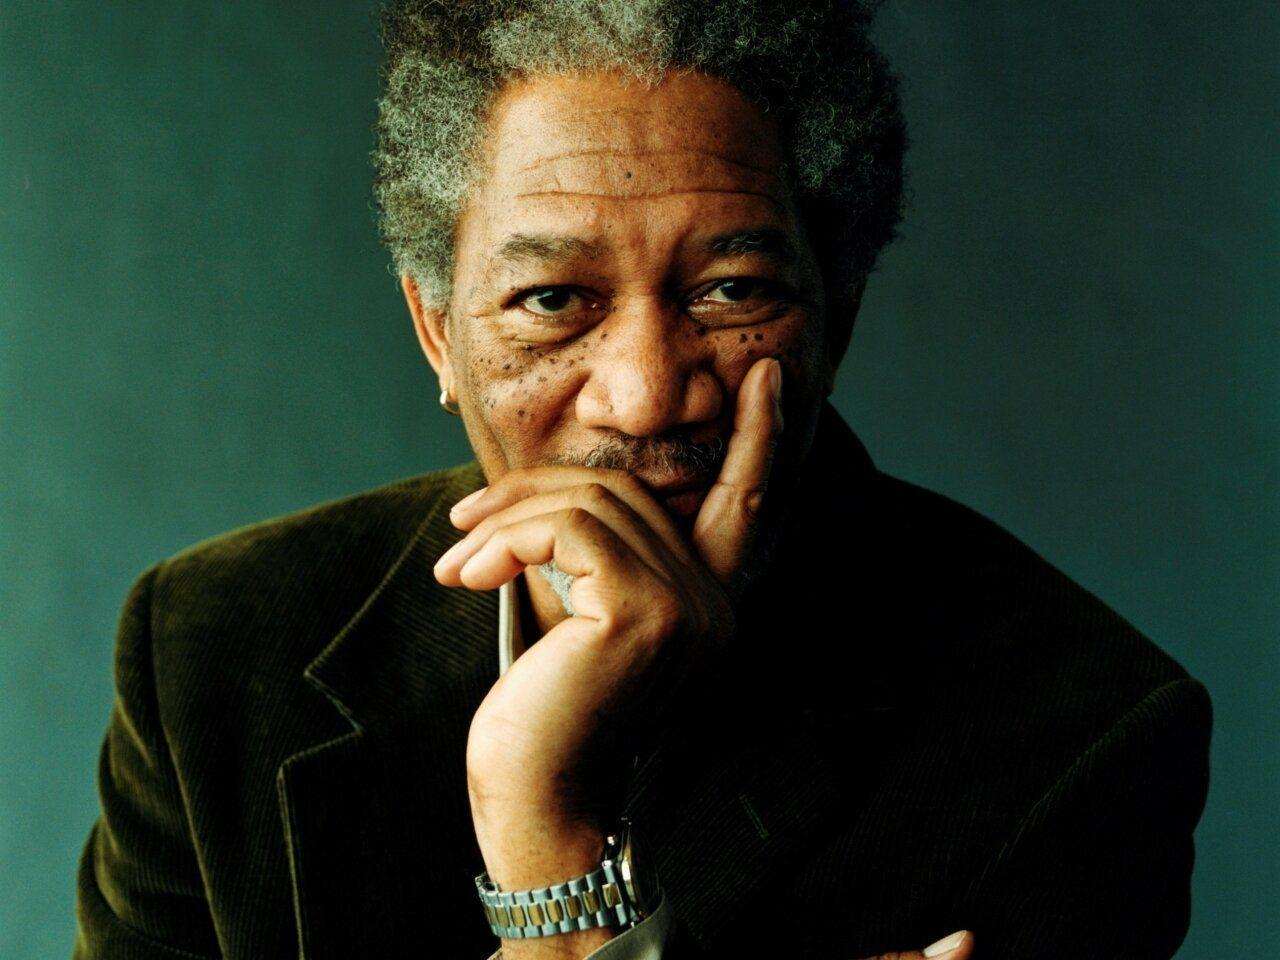 HD Morgan Freeman Wallpapers and Photos | HD Celebrities Wallpapers